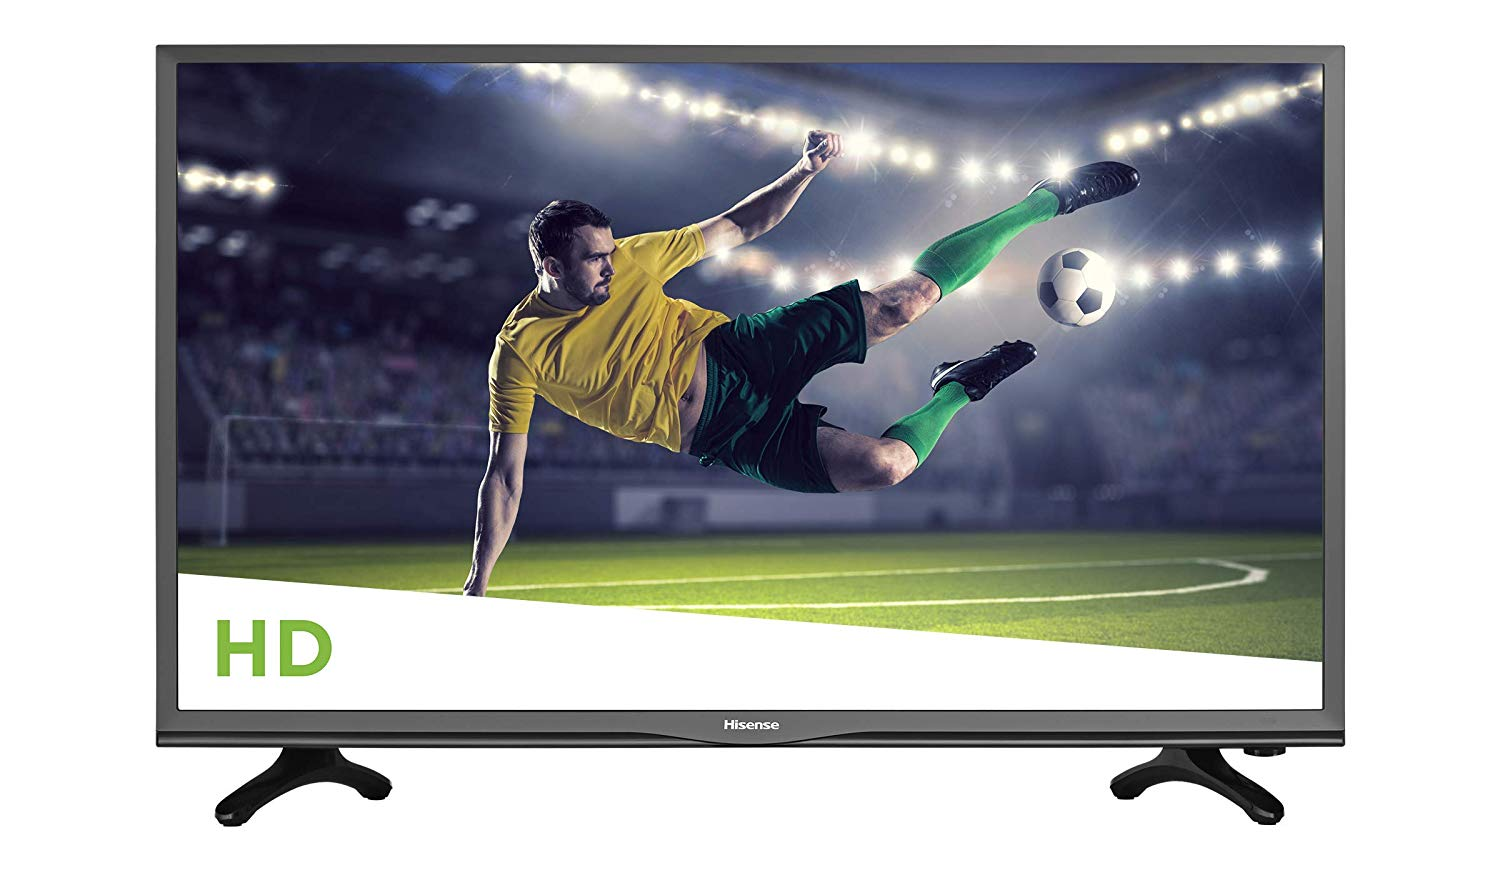 Hisense 40-Inch 1080p LED TV Review